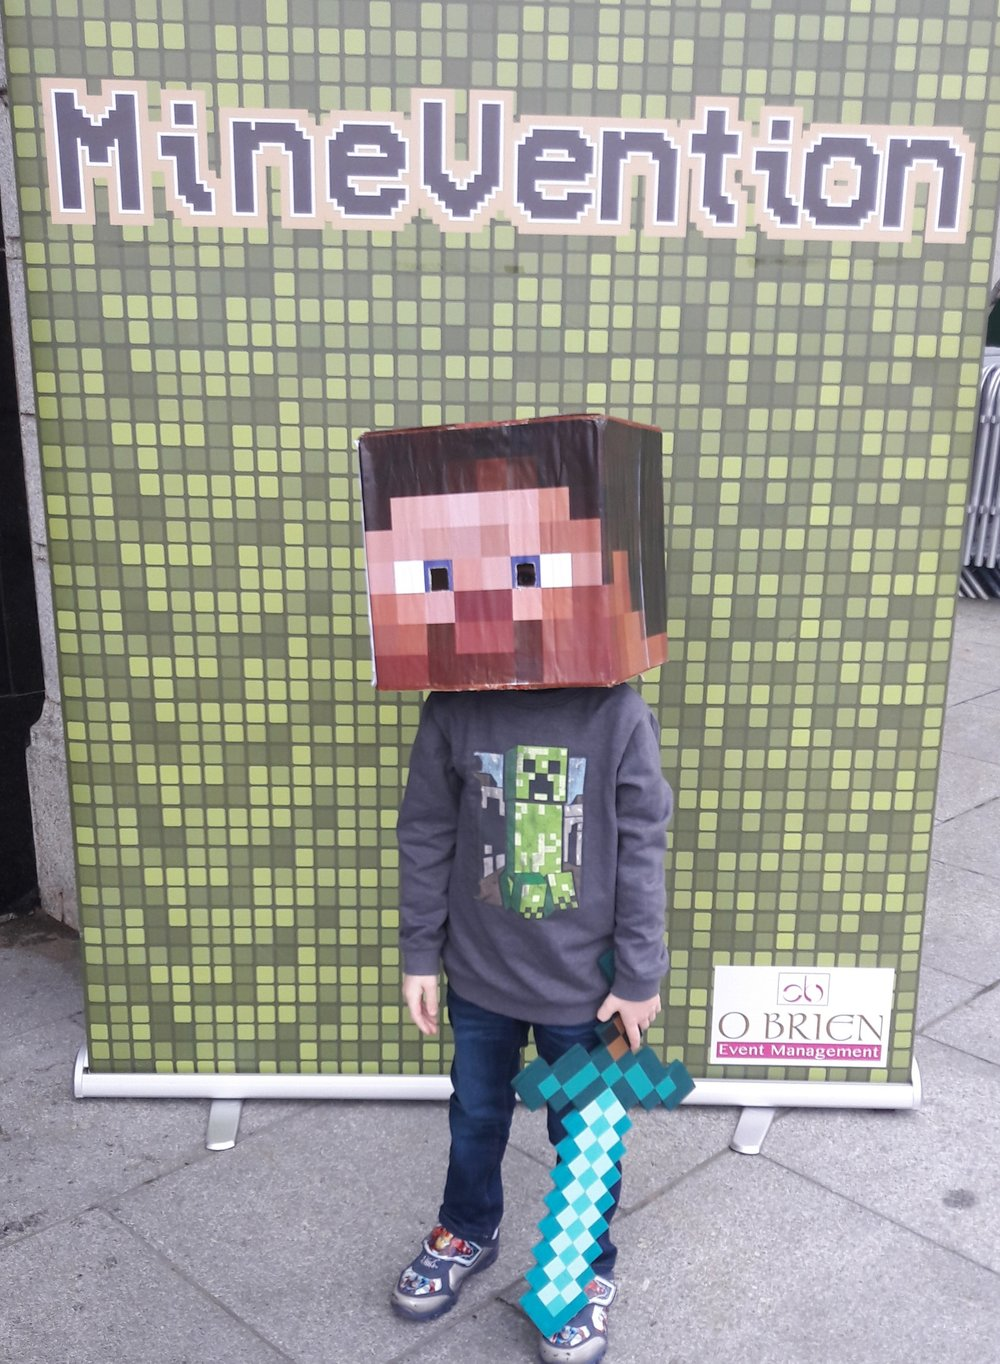 Mine craft Head printed in store.An